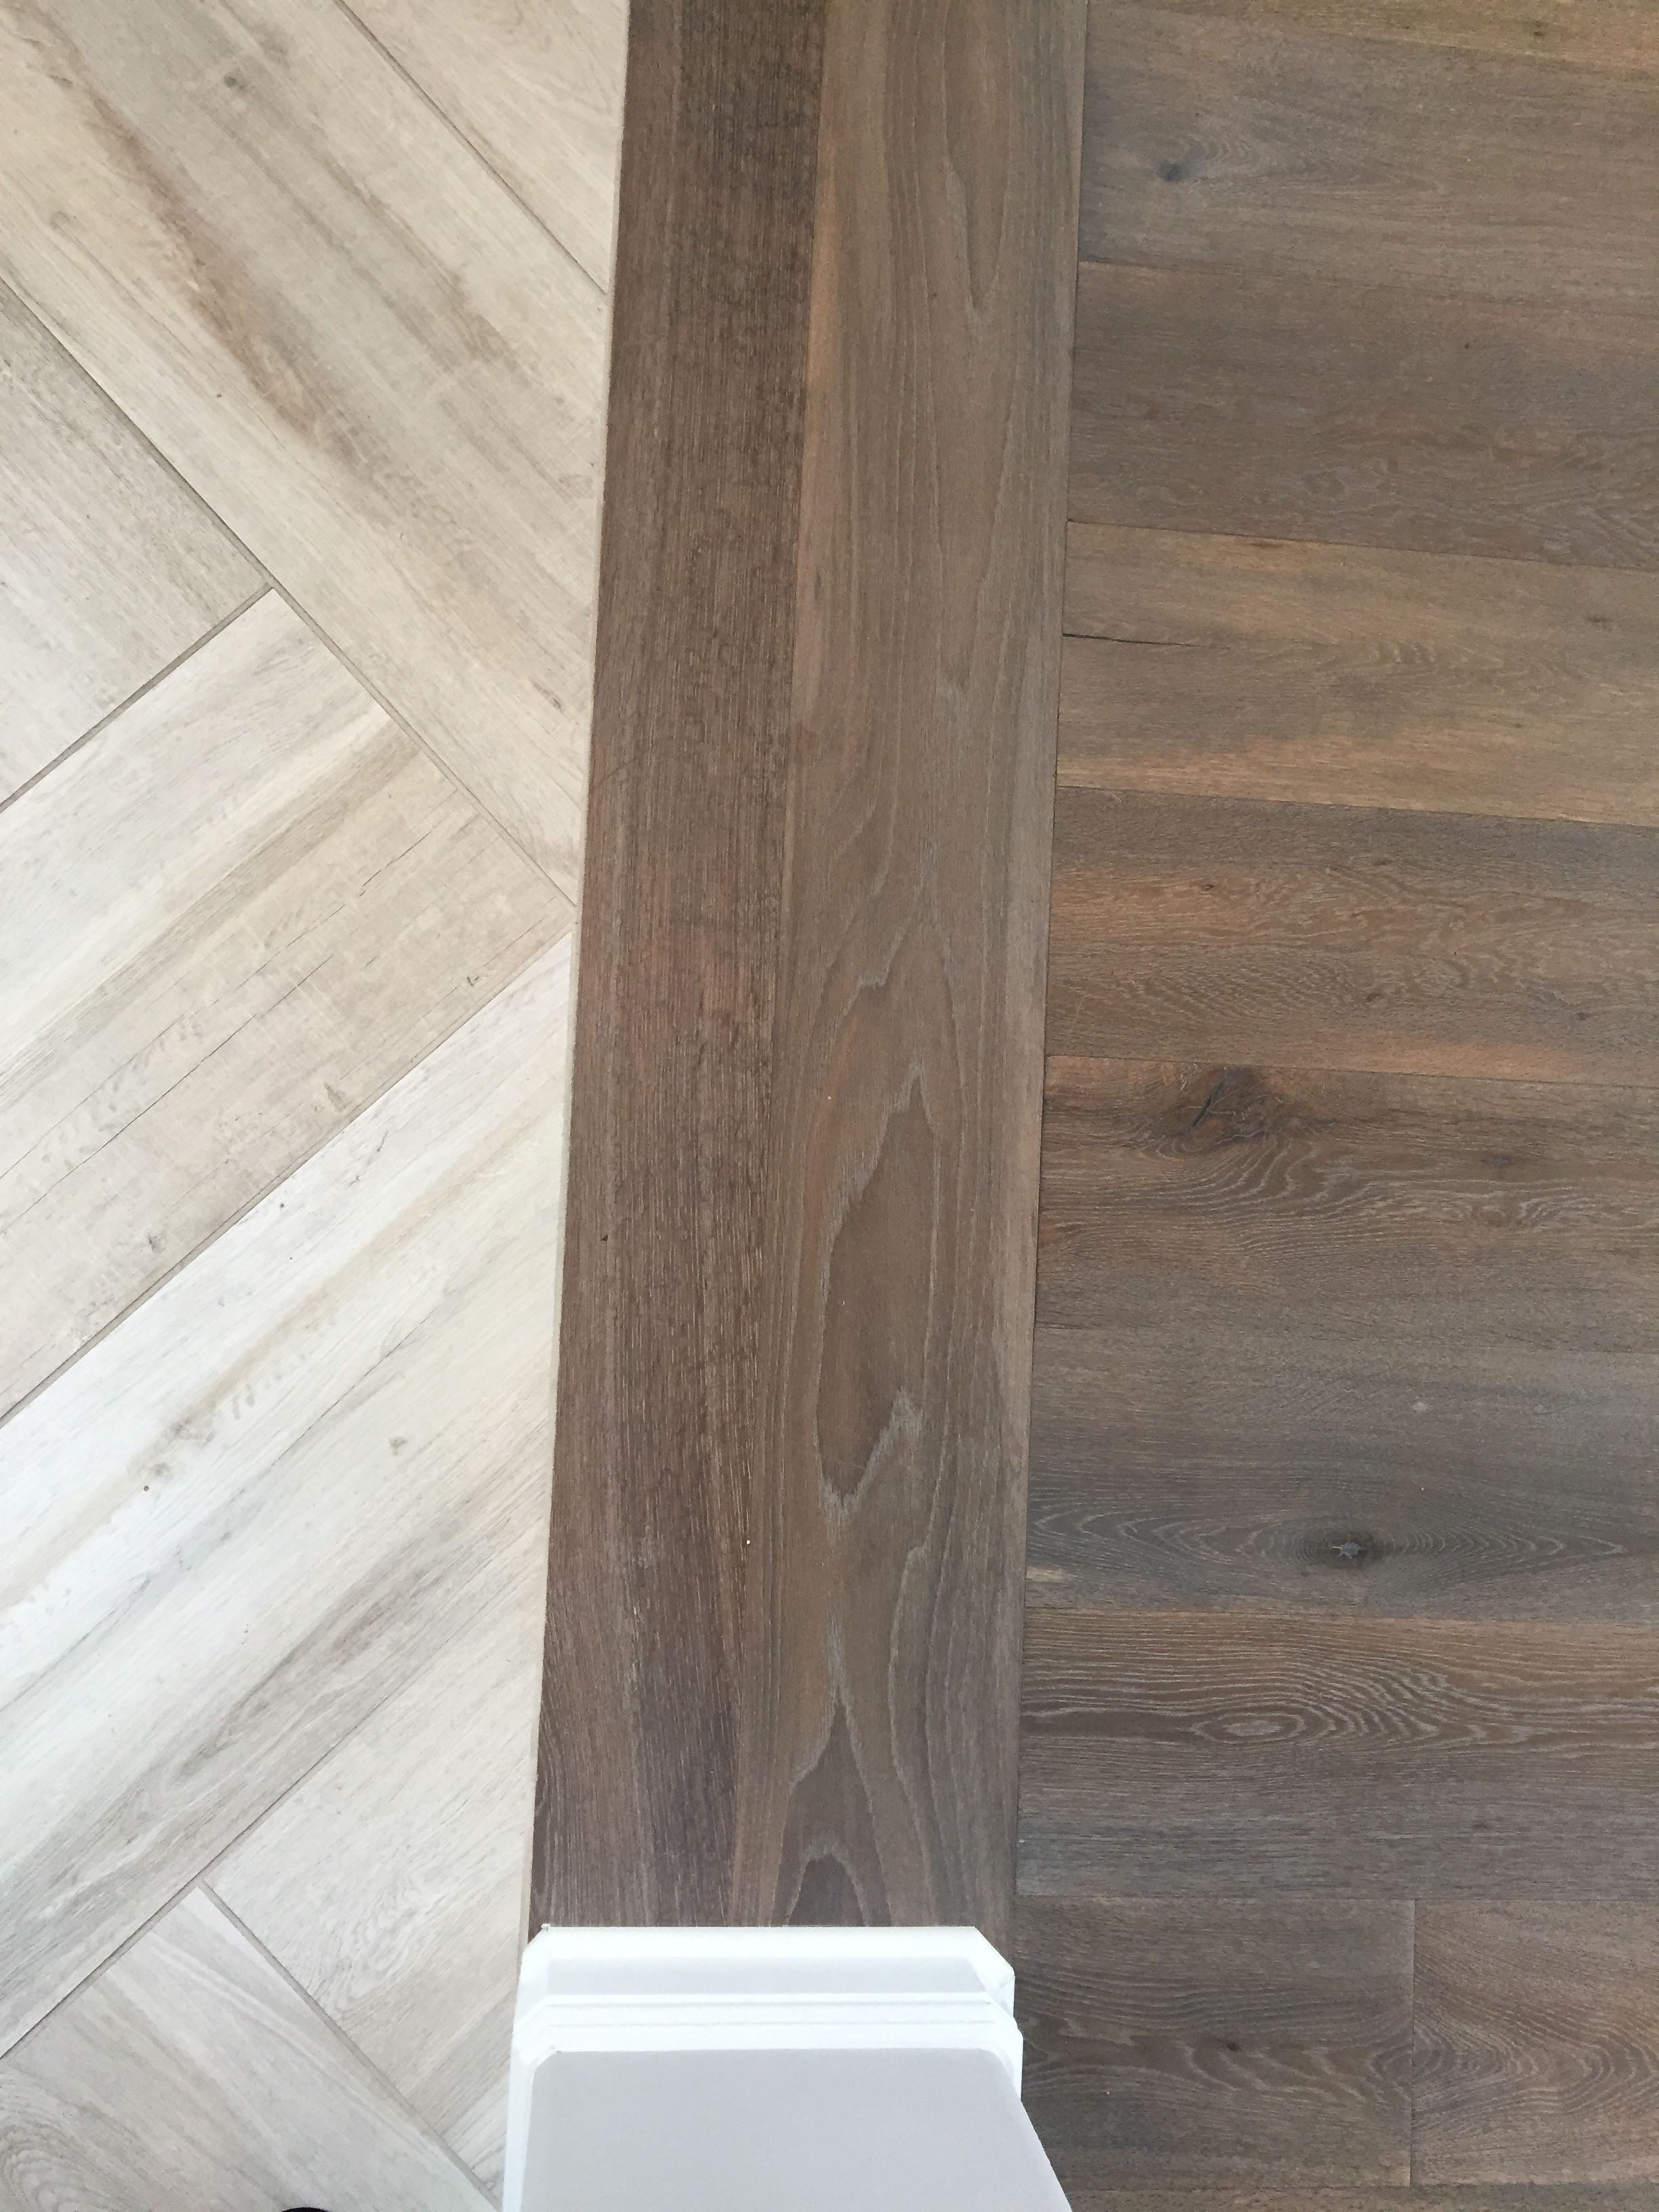 tile and hardwood floor combinations of floor transition laminate to herringbone tile pattern model throughout floor transition laminate to herringbone tile pattern herringbone tile pattern herringbone wood floor